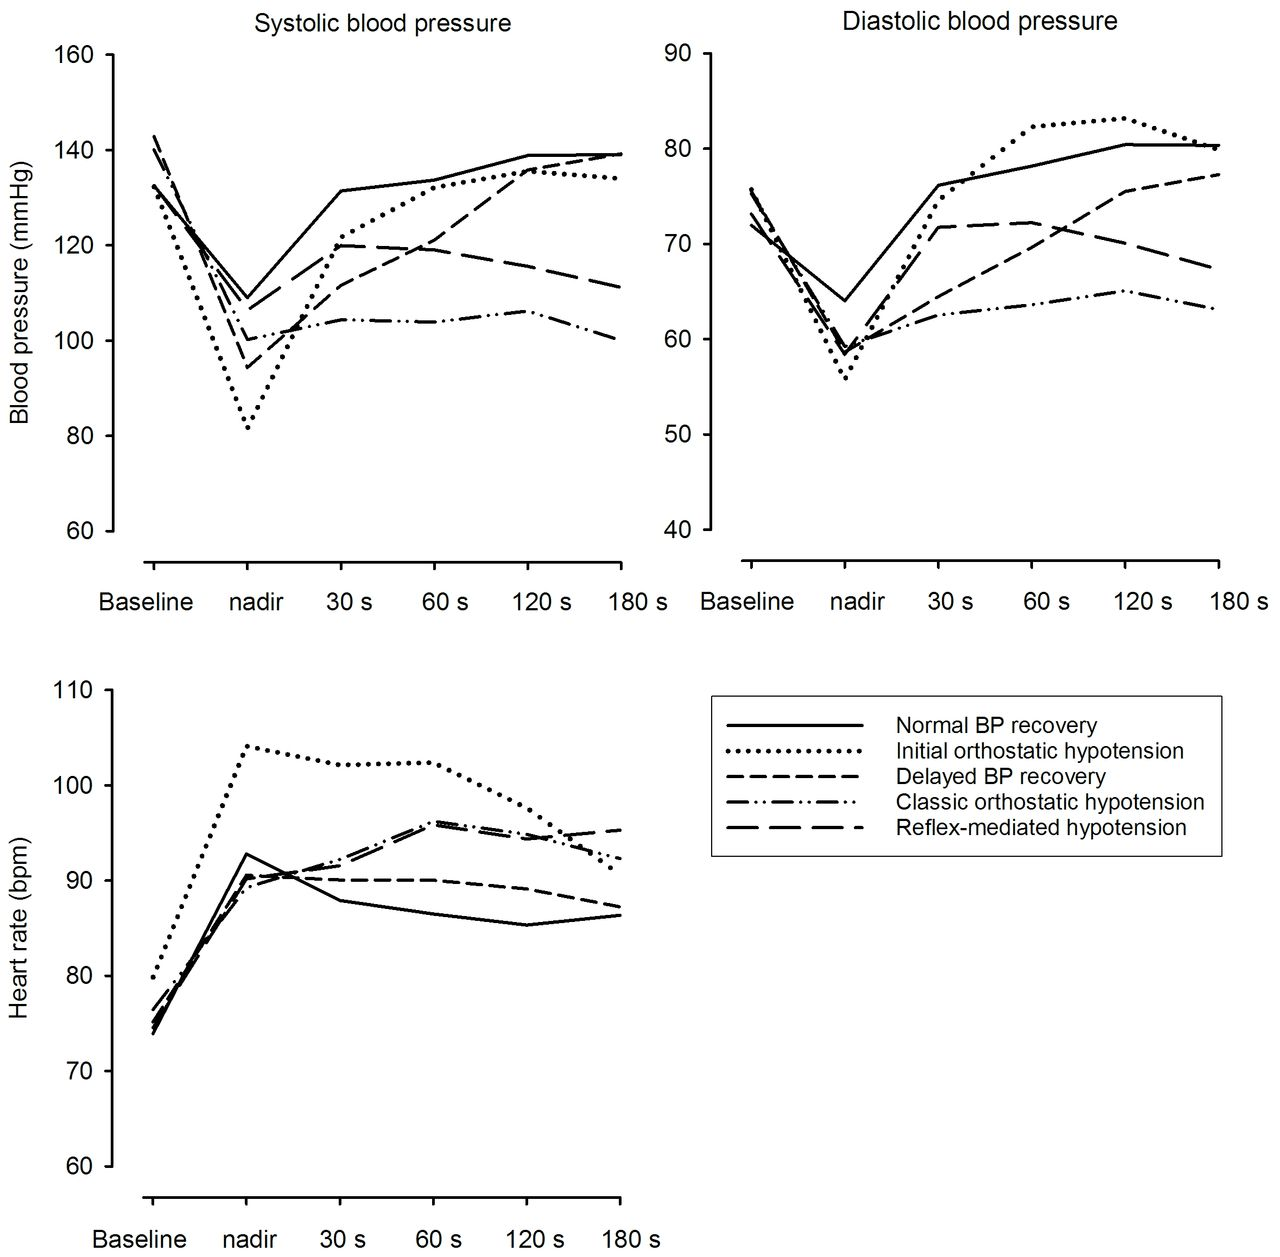 Orthostatic blood pressure recovery patterns in suspected